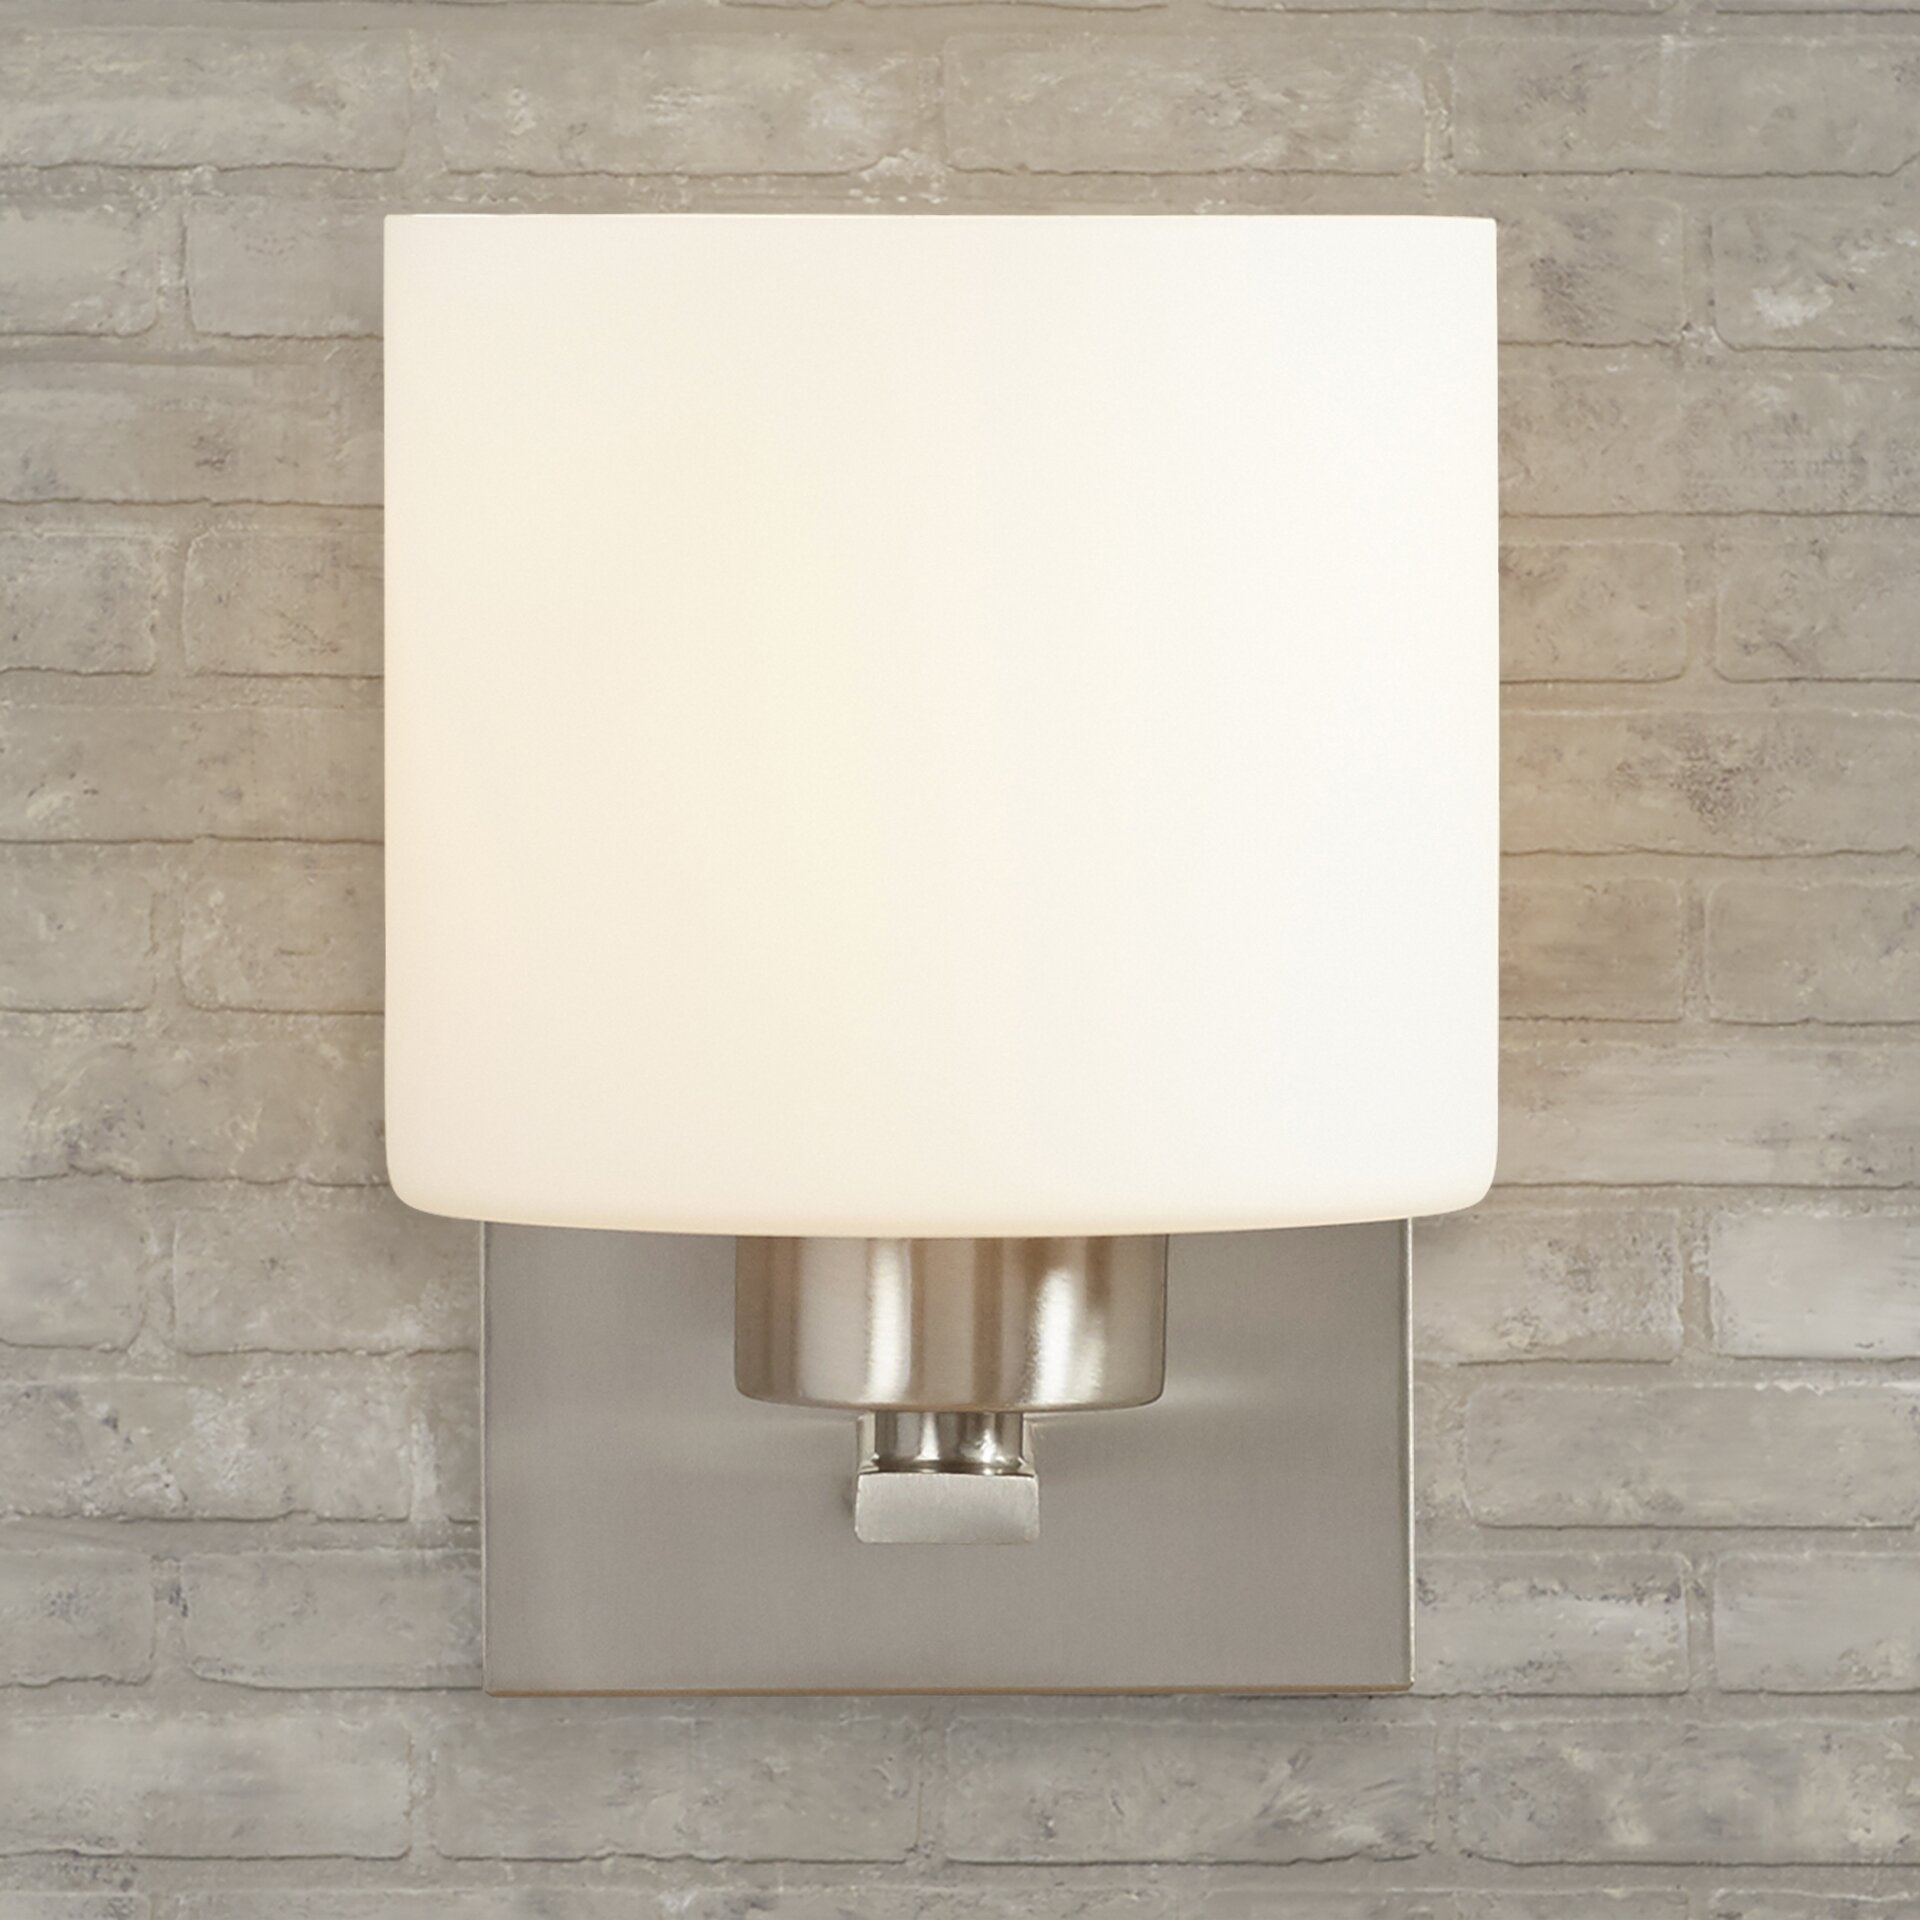 quick view cheap wall sconce lighting